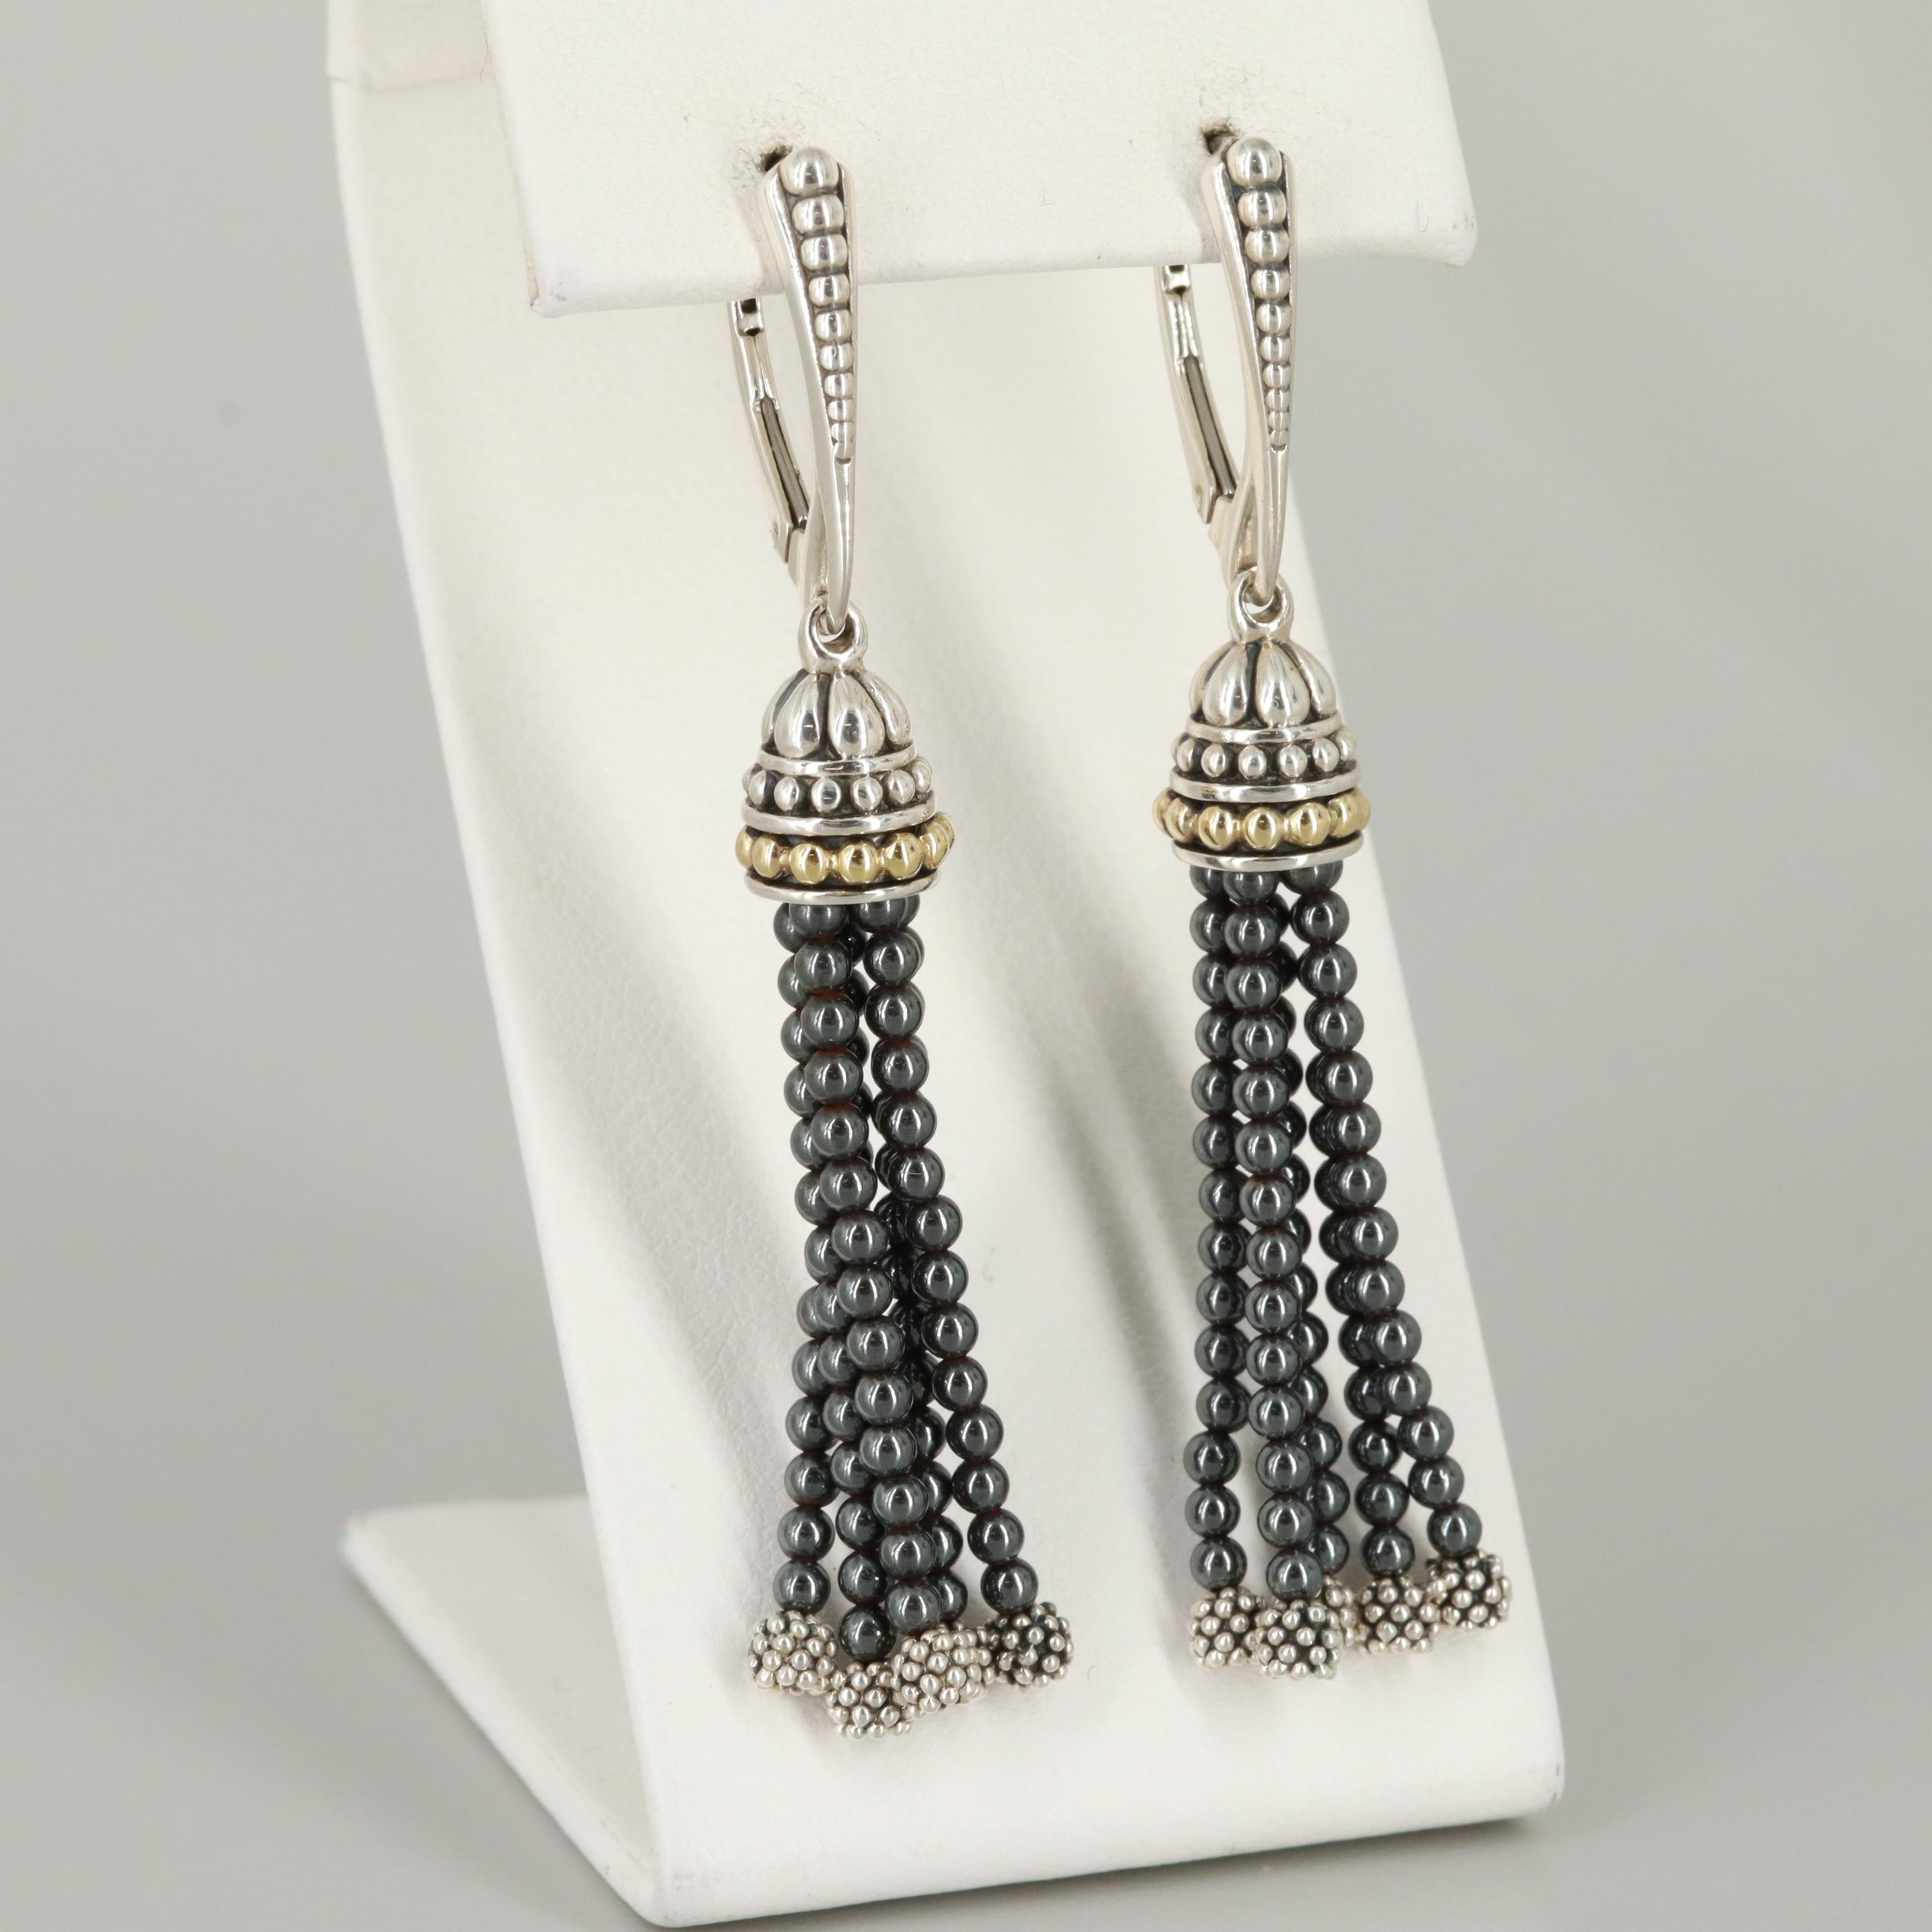 Caviar by Lagos Sterling Silver Earrings with 18K Yellow Gold Accents